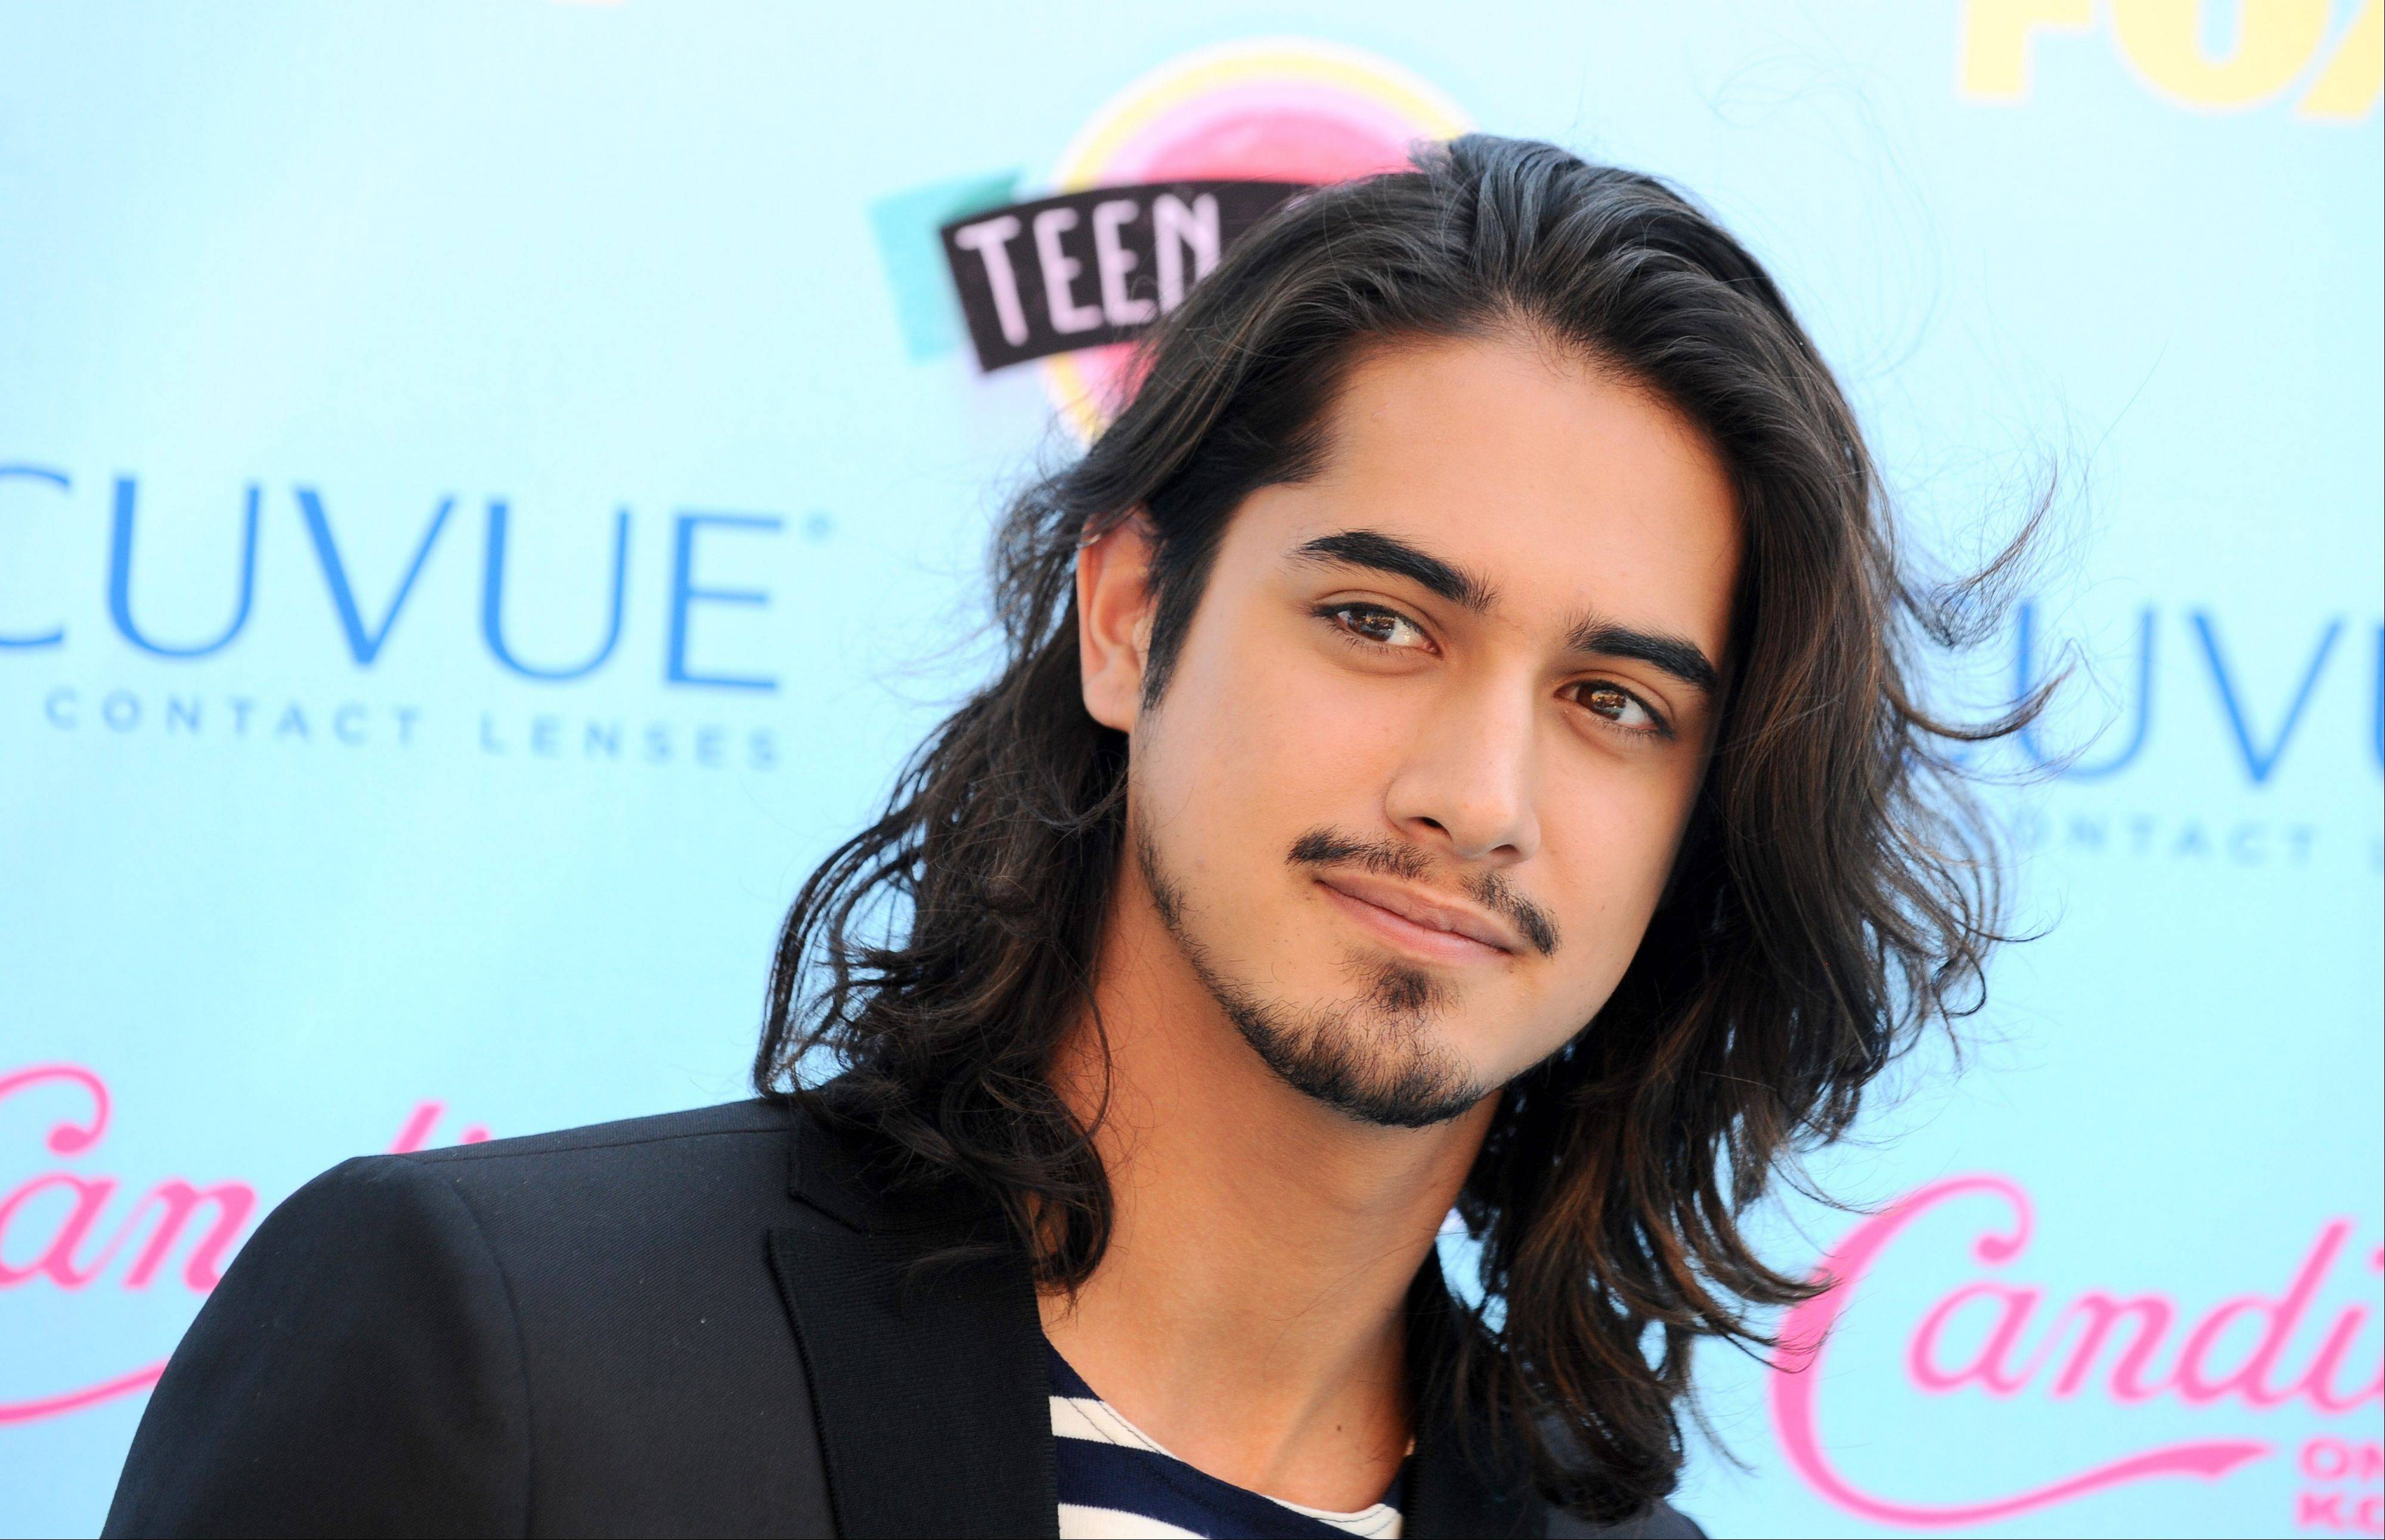 """Twisted"" star Avan Jogia arrives at the Teen Choice Awards at the Gibson Amphitheater on Sunday."